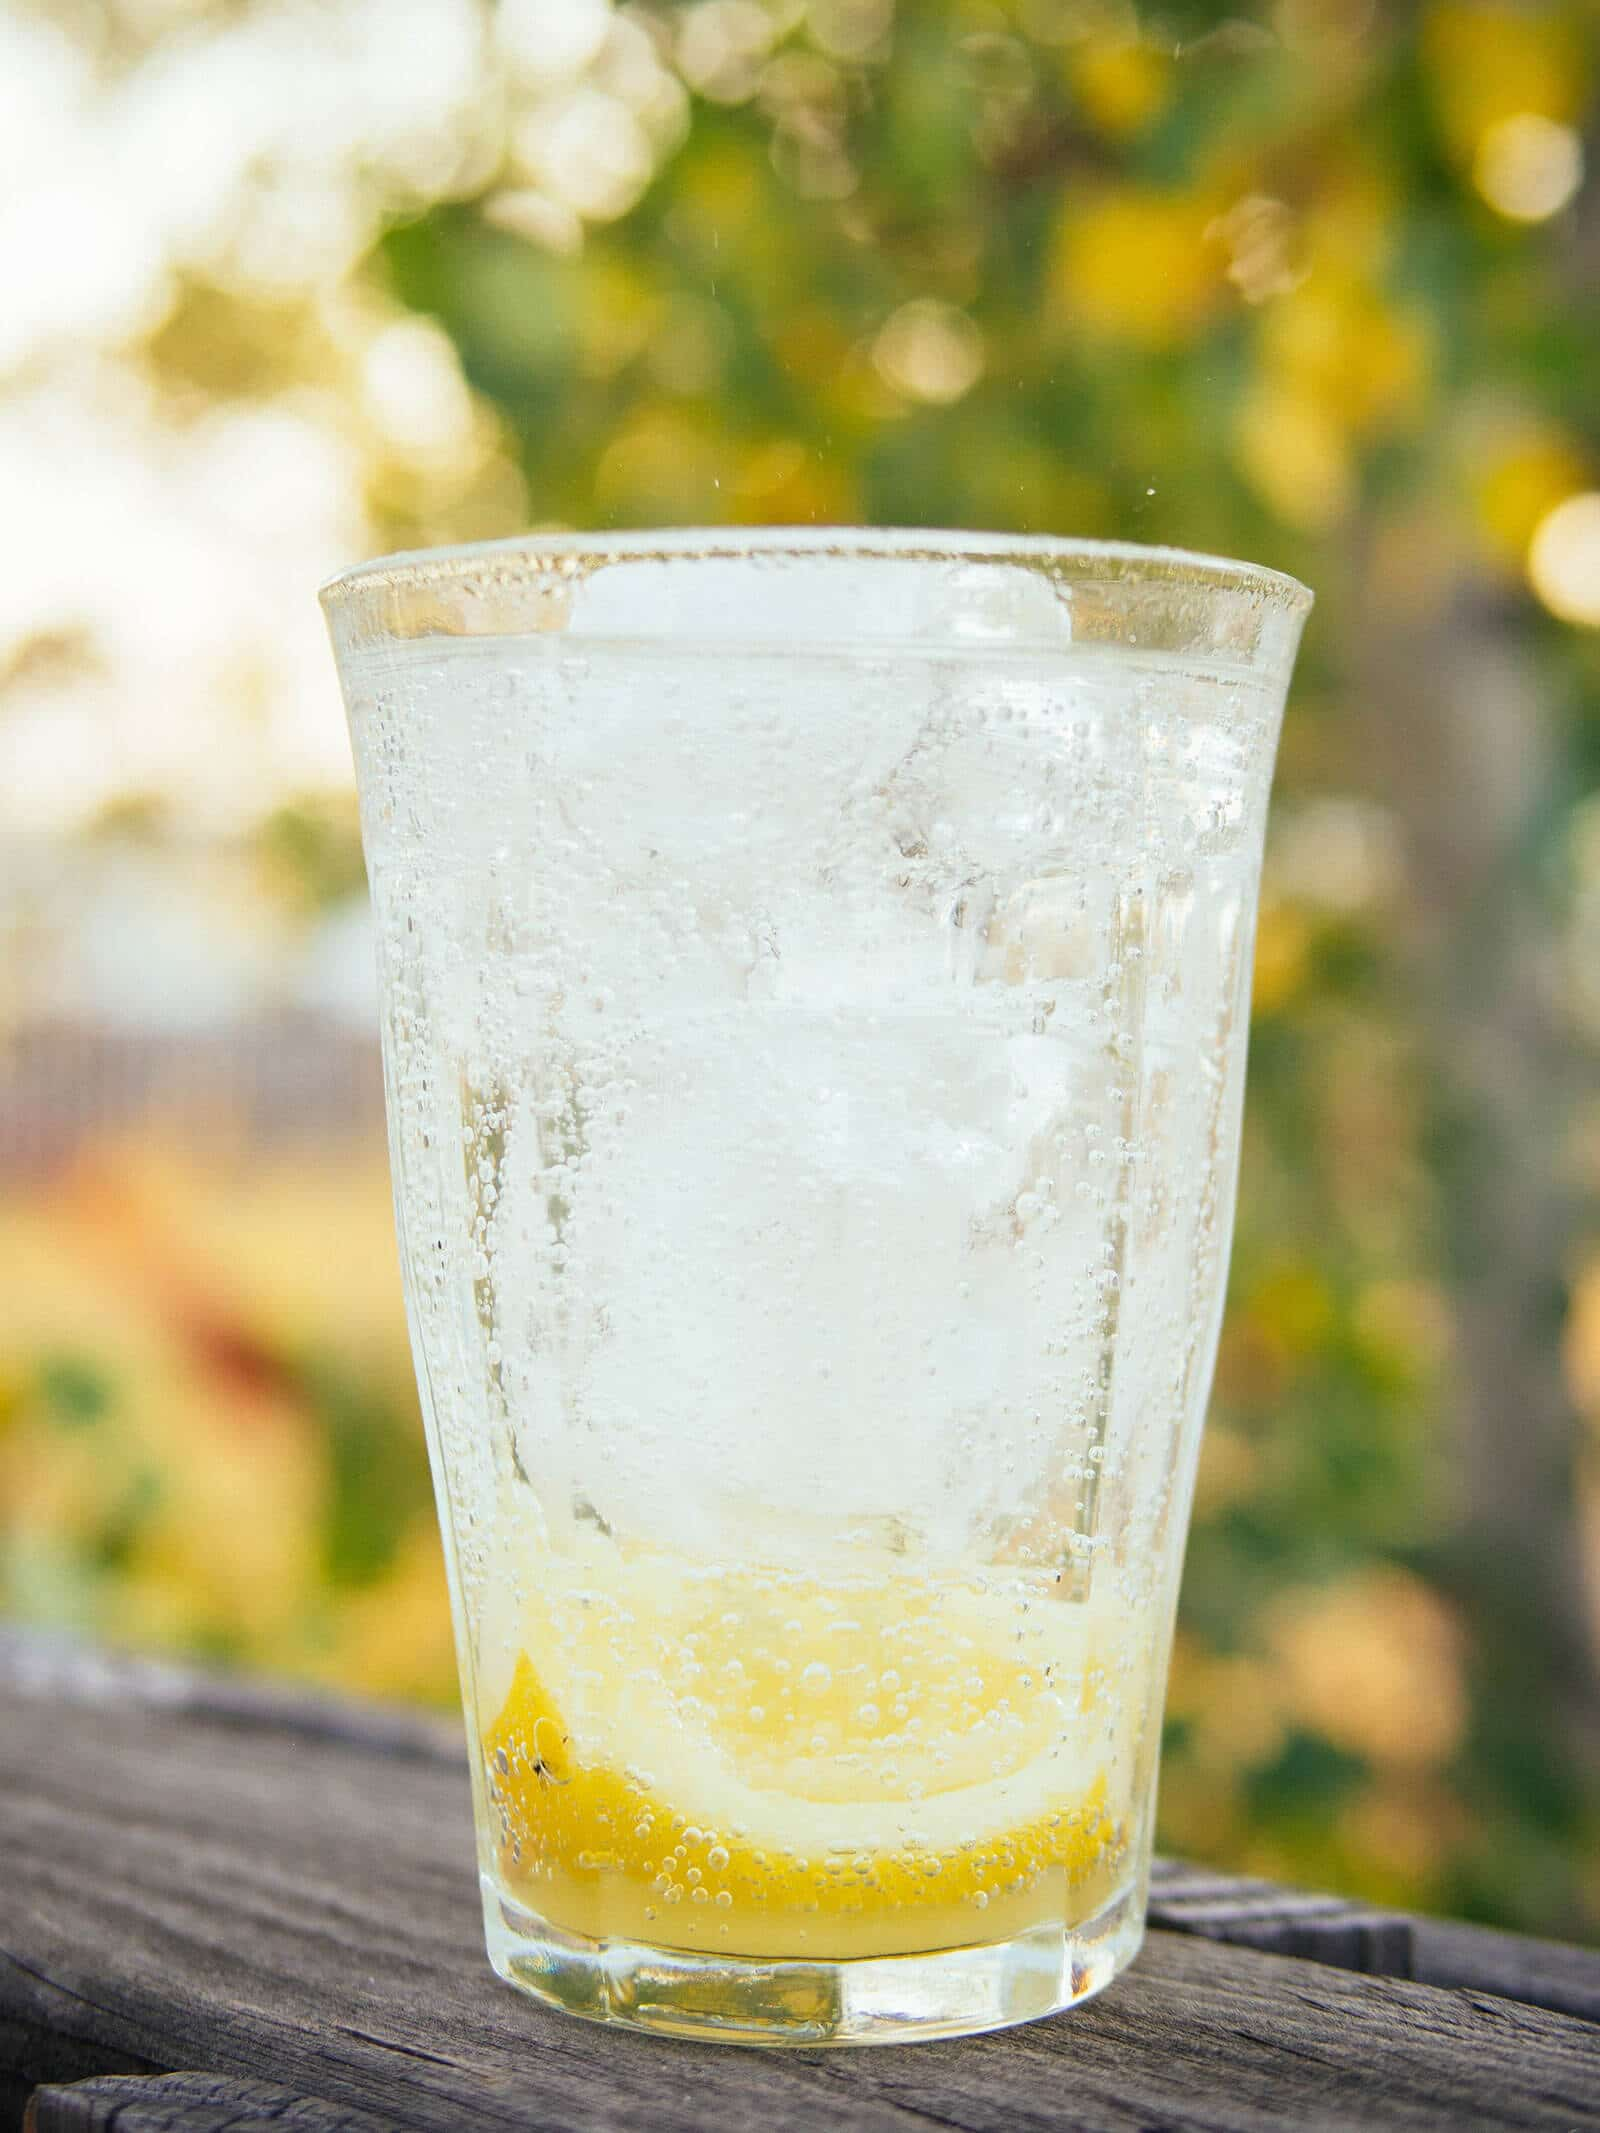 Icy cold glass of chanh muoi (Vietnamese salty lemonade) with fizzy soda